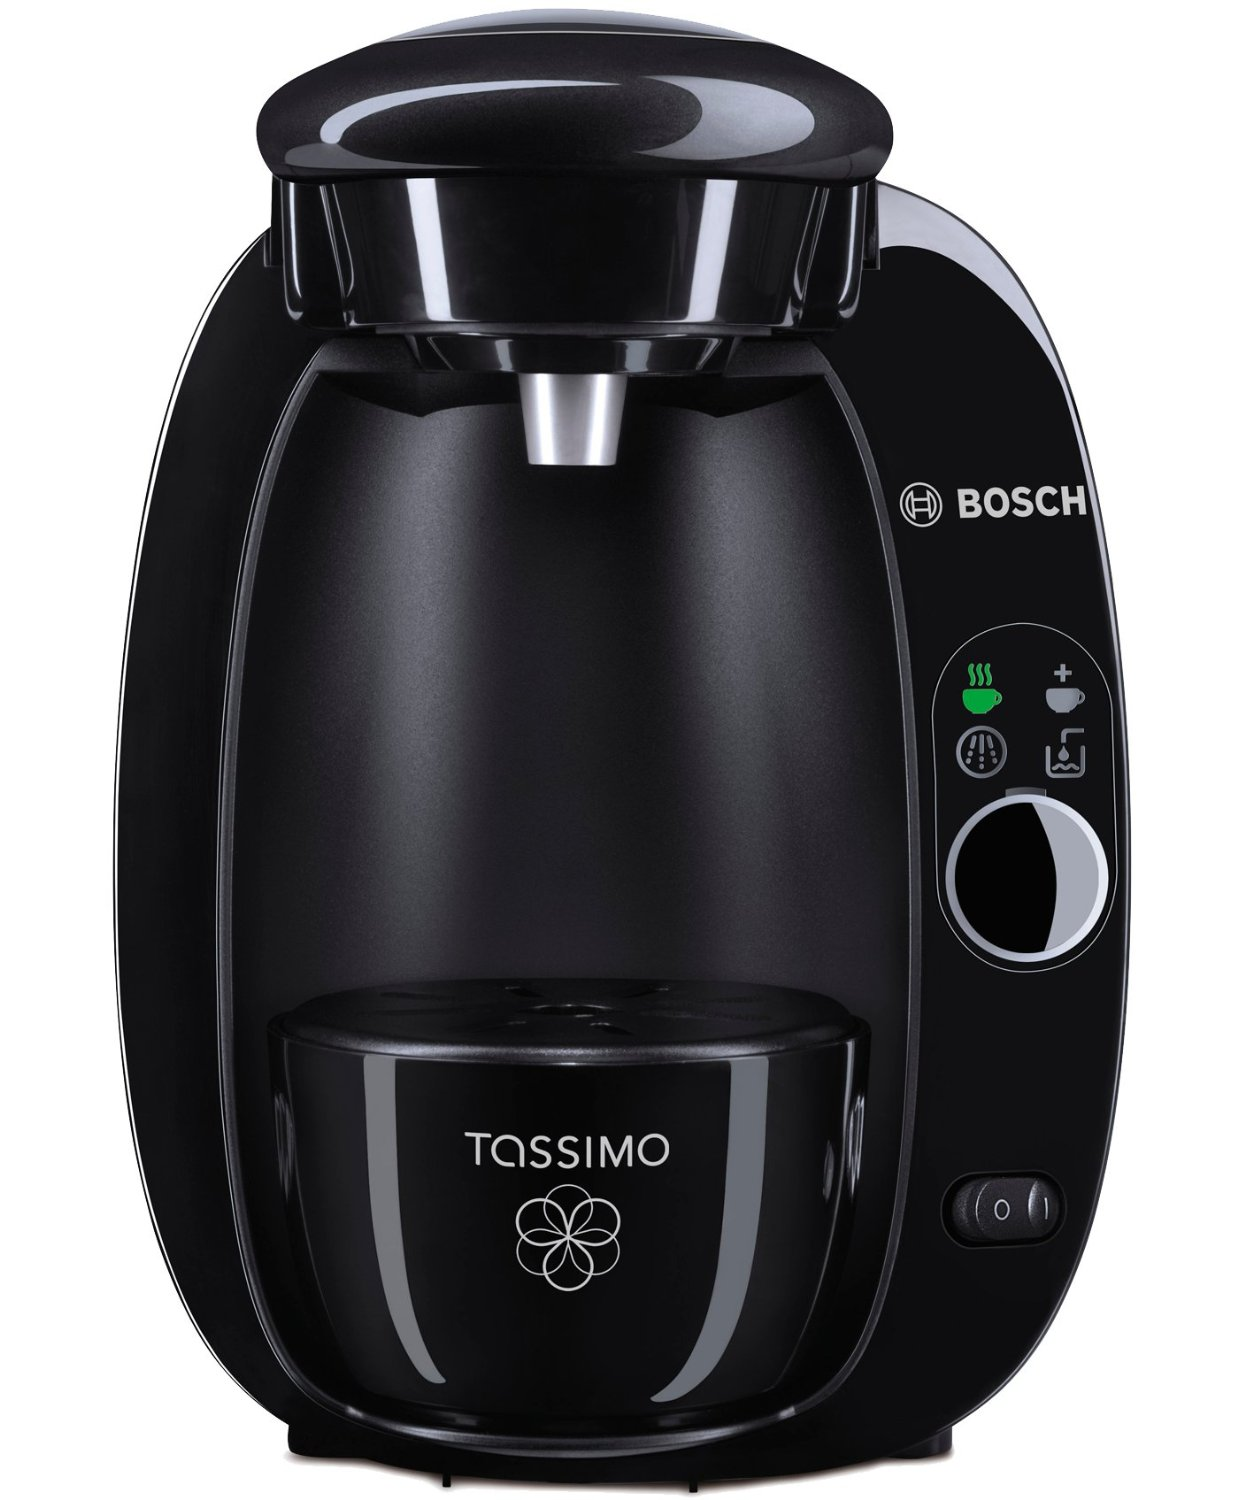 amazon canada deals save 65 off bosch tassimo t20 home. Black Bedroom Furniture Sets. Home Design Ideas